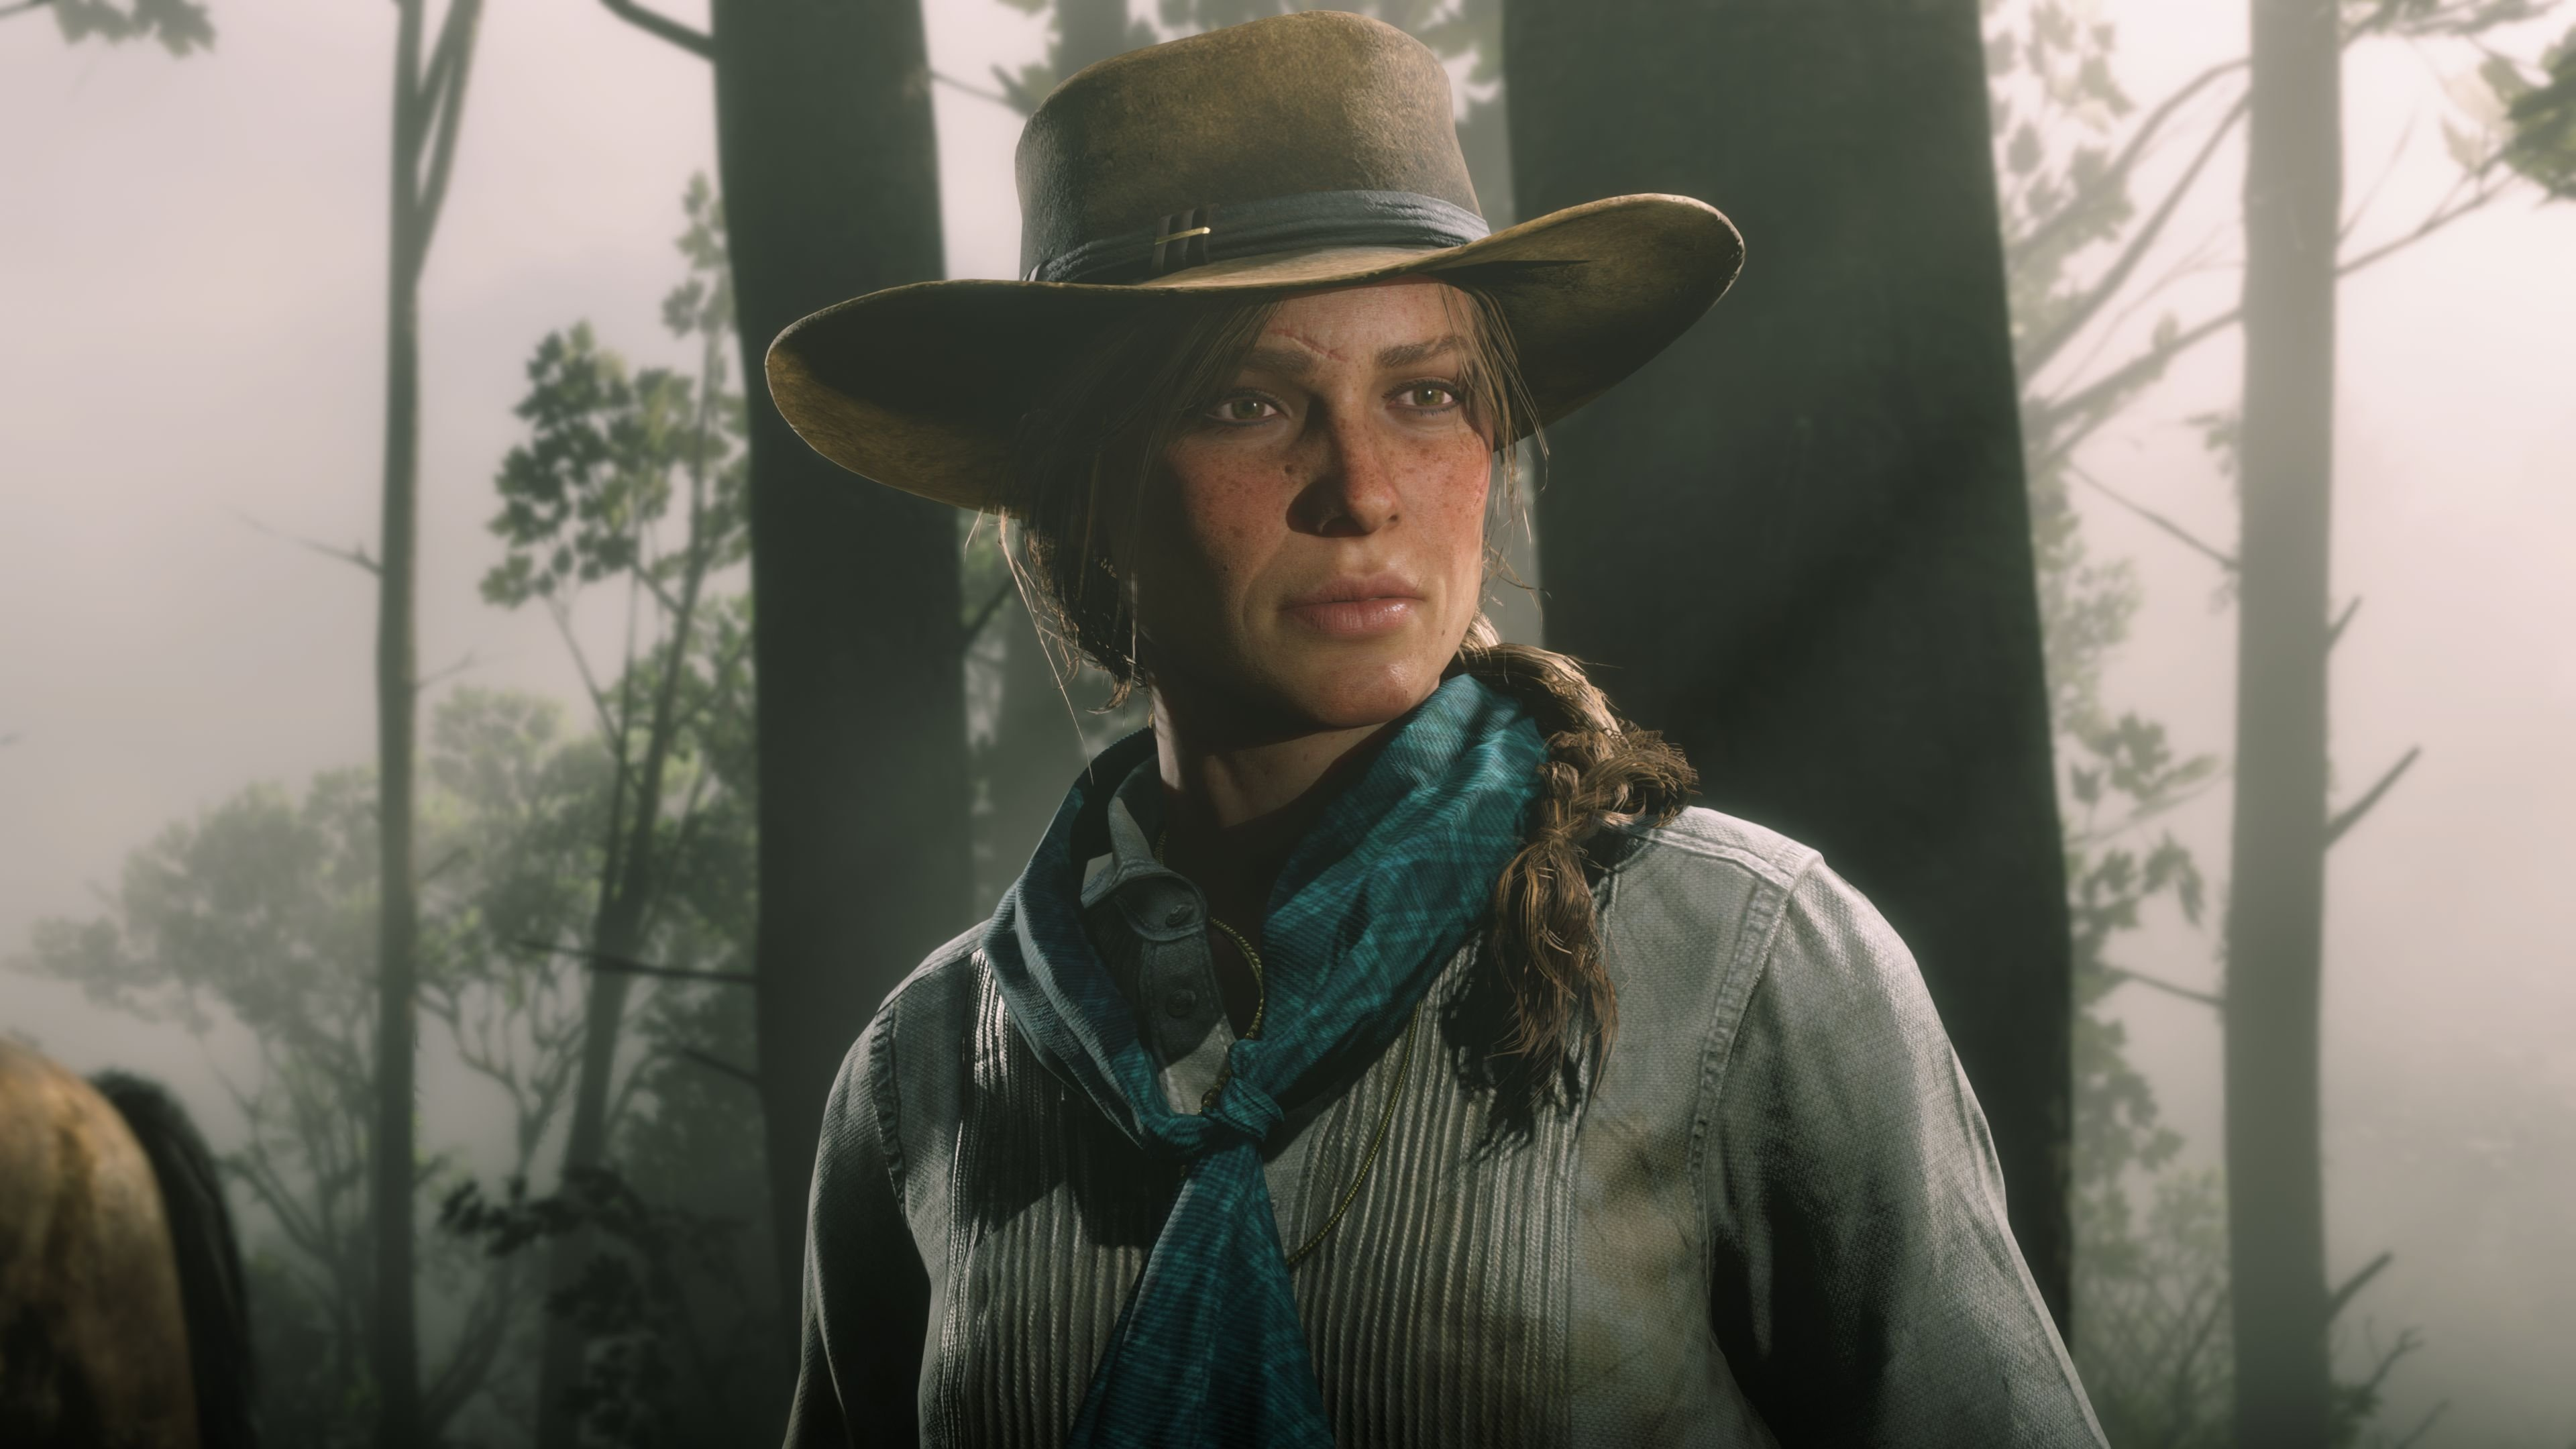 Red Dead Redemption 2 PC Trailer Released, Highlights Visuals